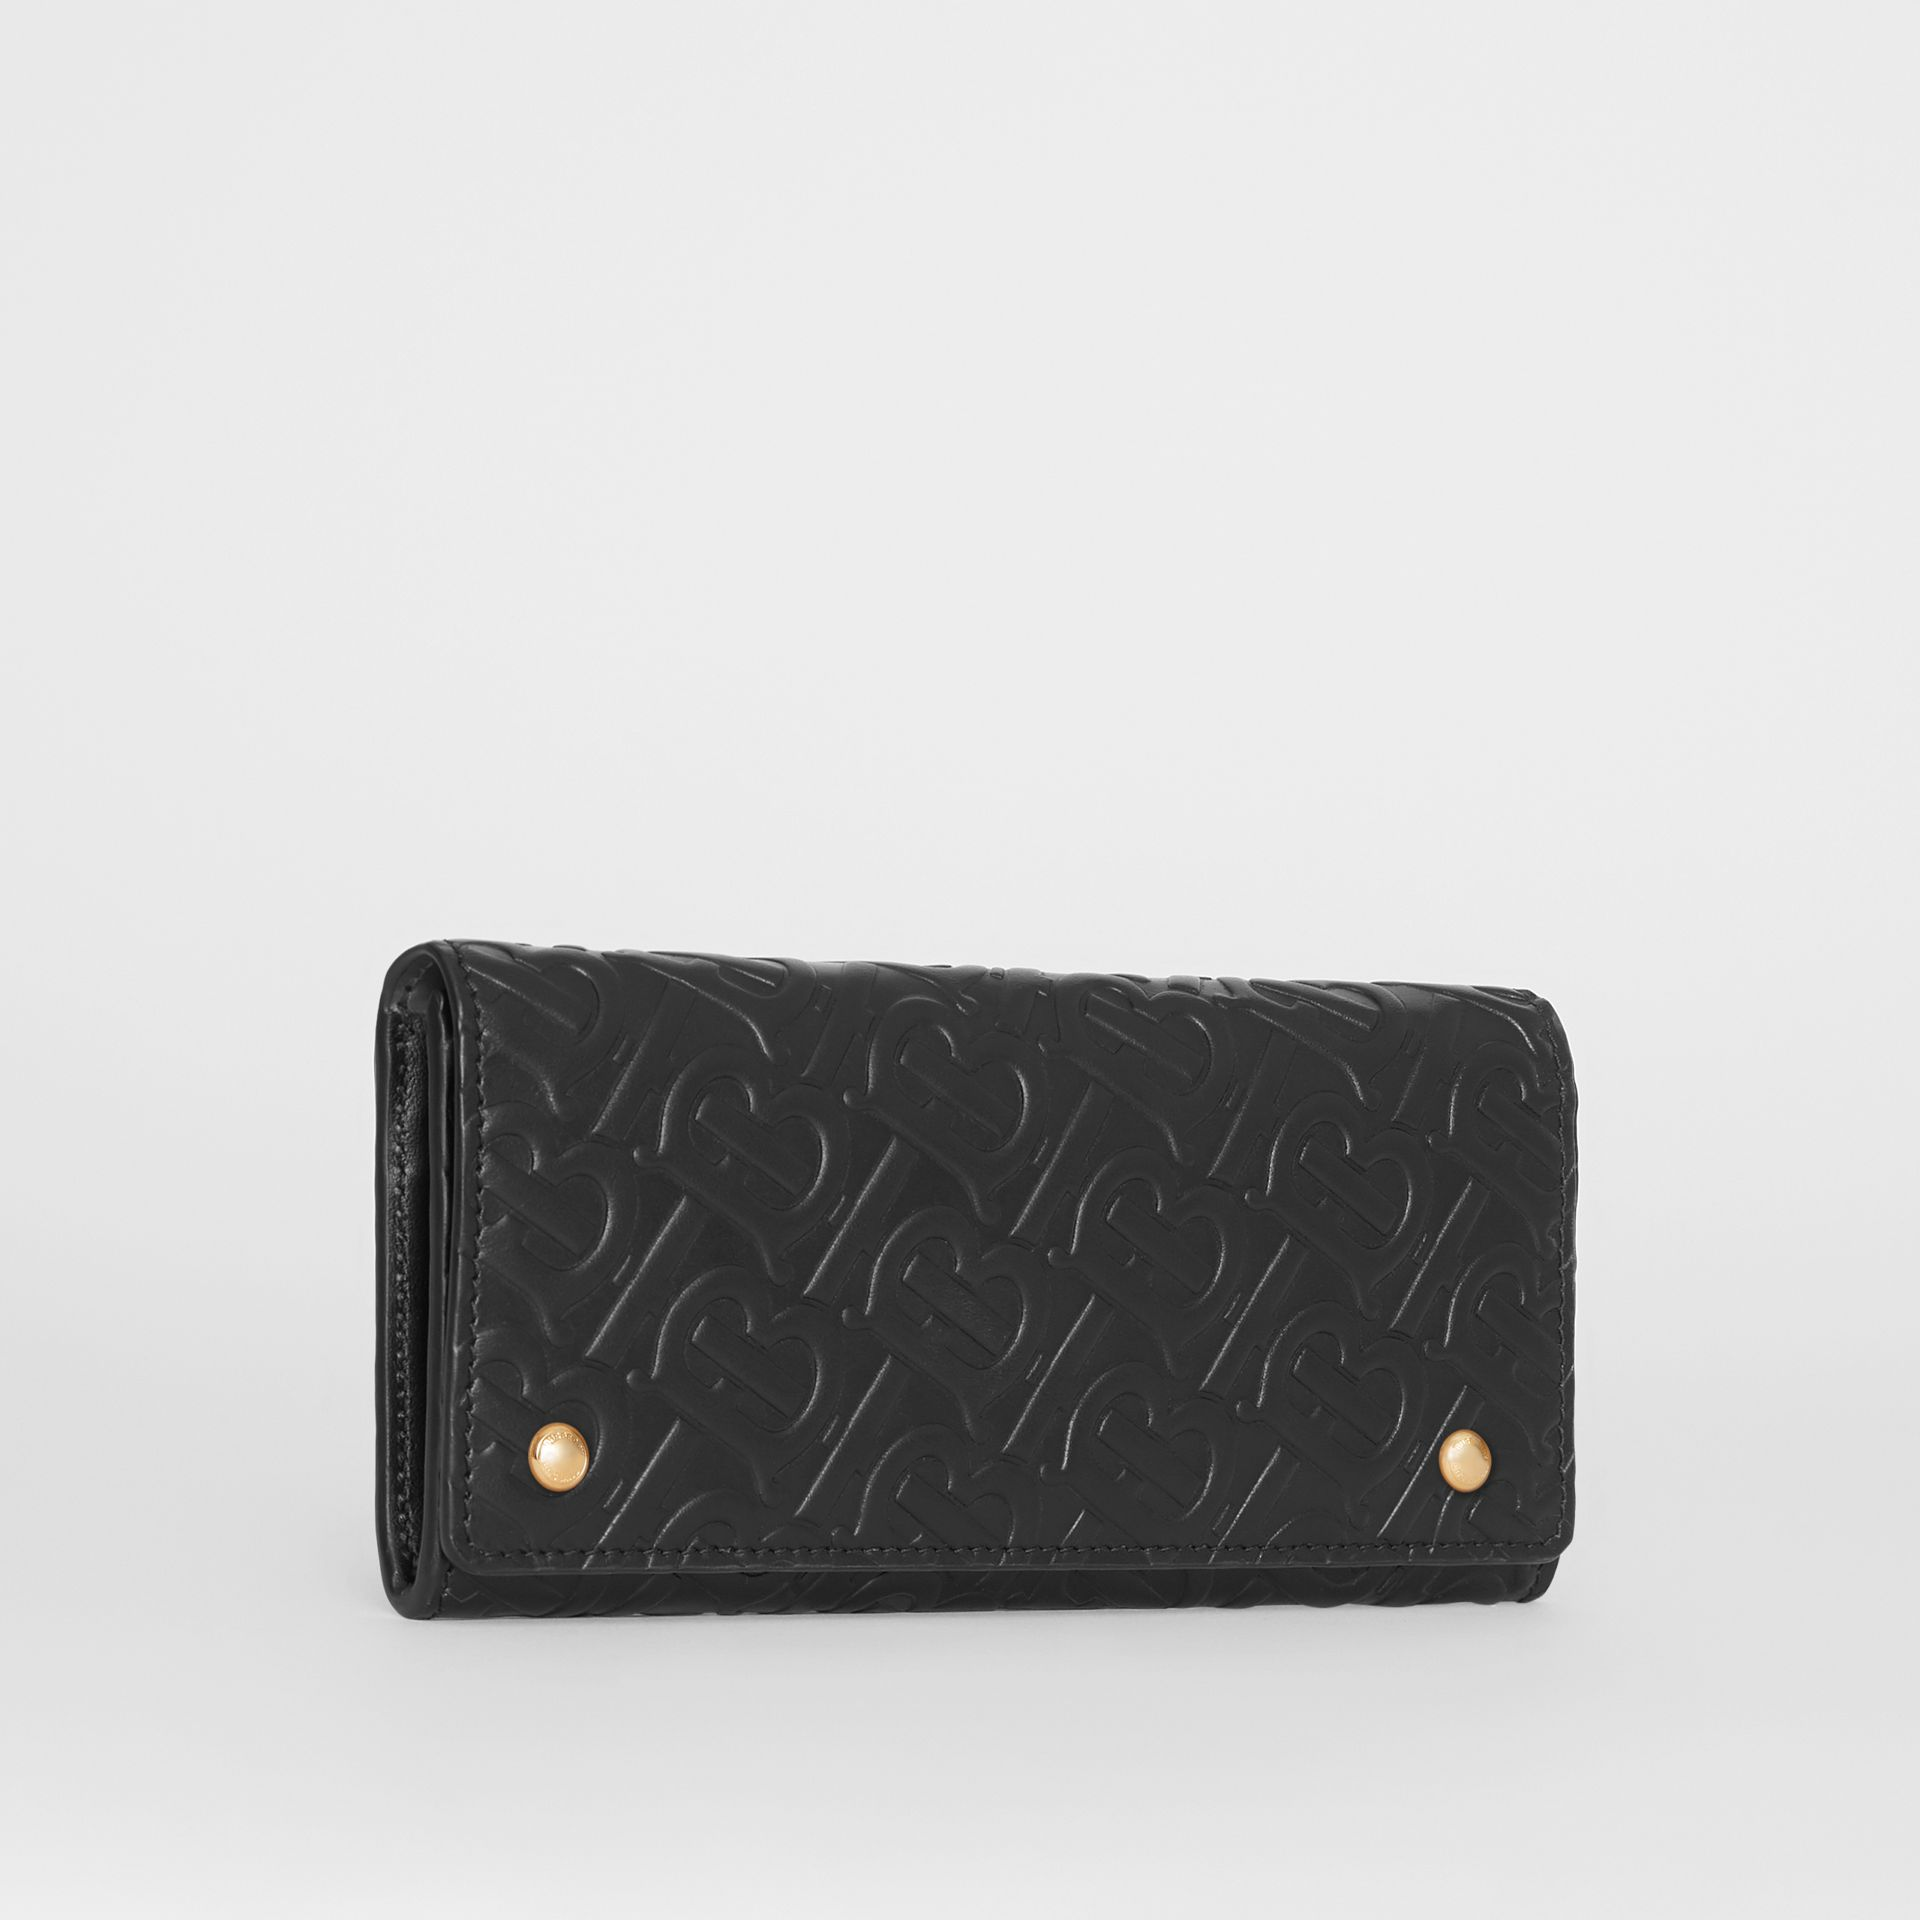 Monogram Leather Continental Wallet in Black - Women | Burberry - gallery image 5